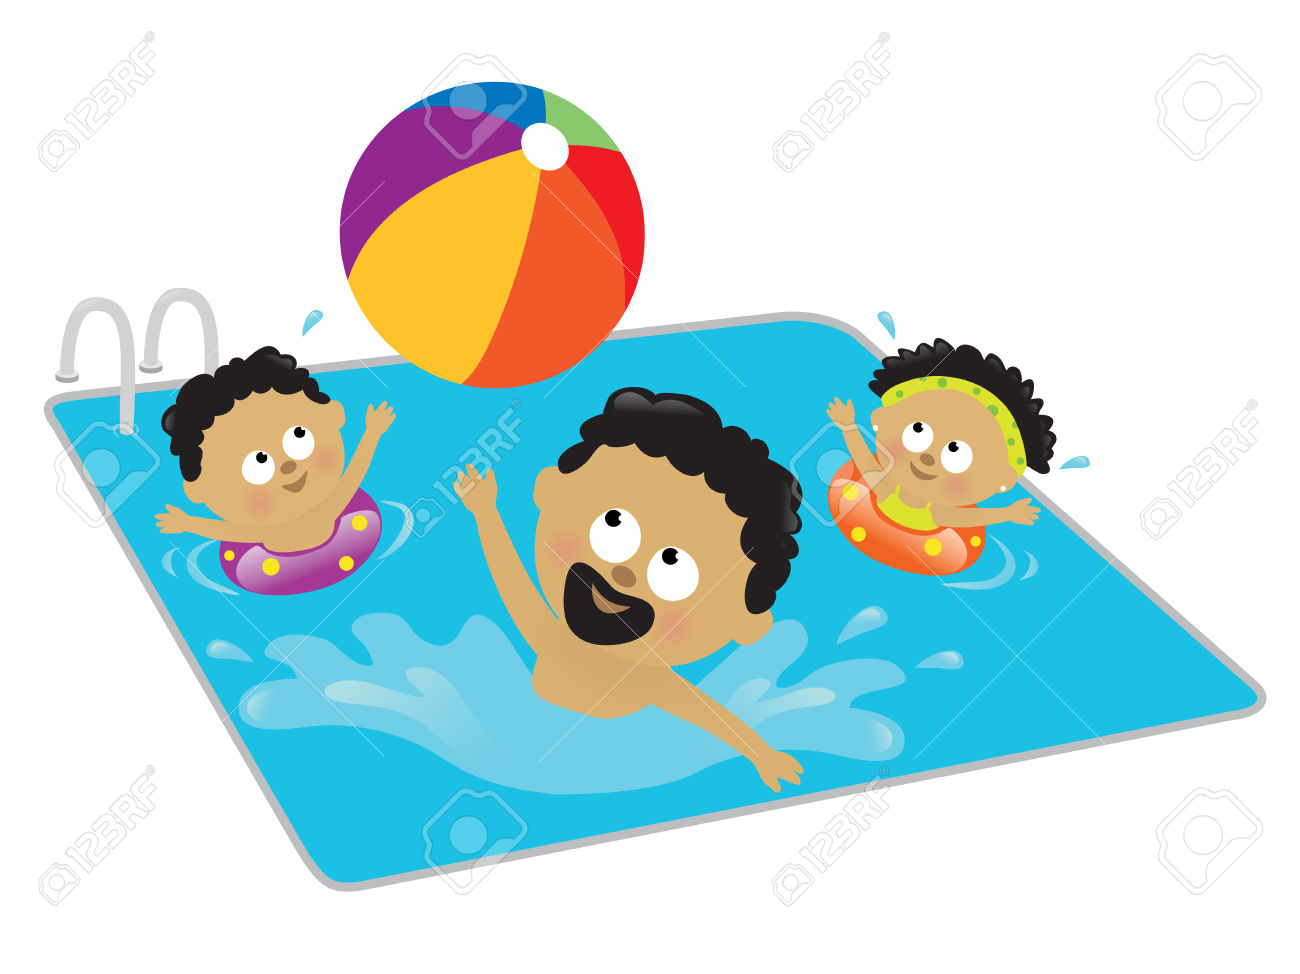 Swimming Pool Cartoon Images Free Download Best Swimming Pool Cartoon Images On